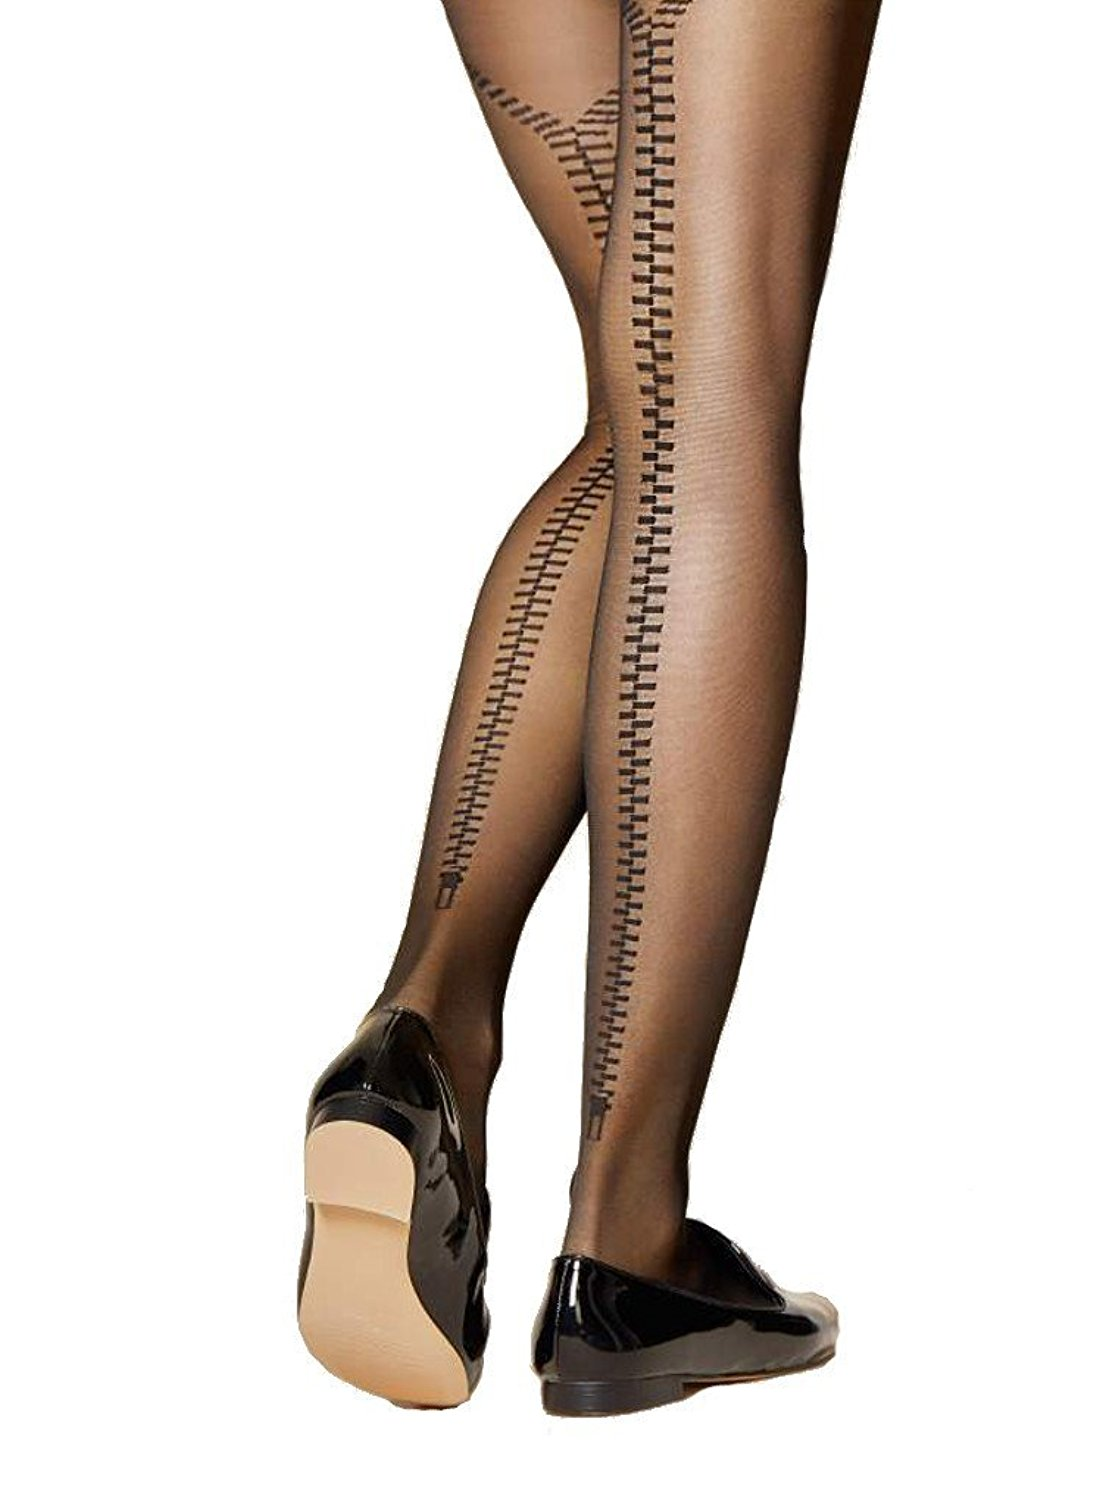 3aafd9016 Get Quotations · Fiore Fidele Seamed Zip Tights